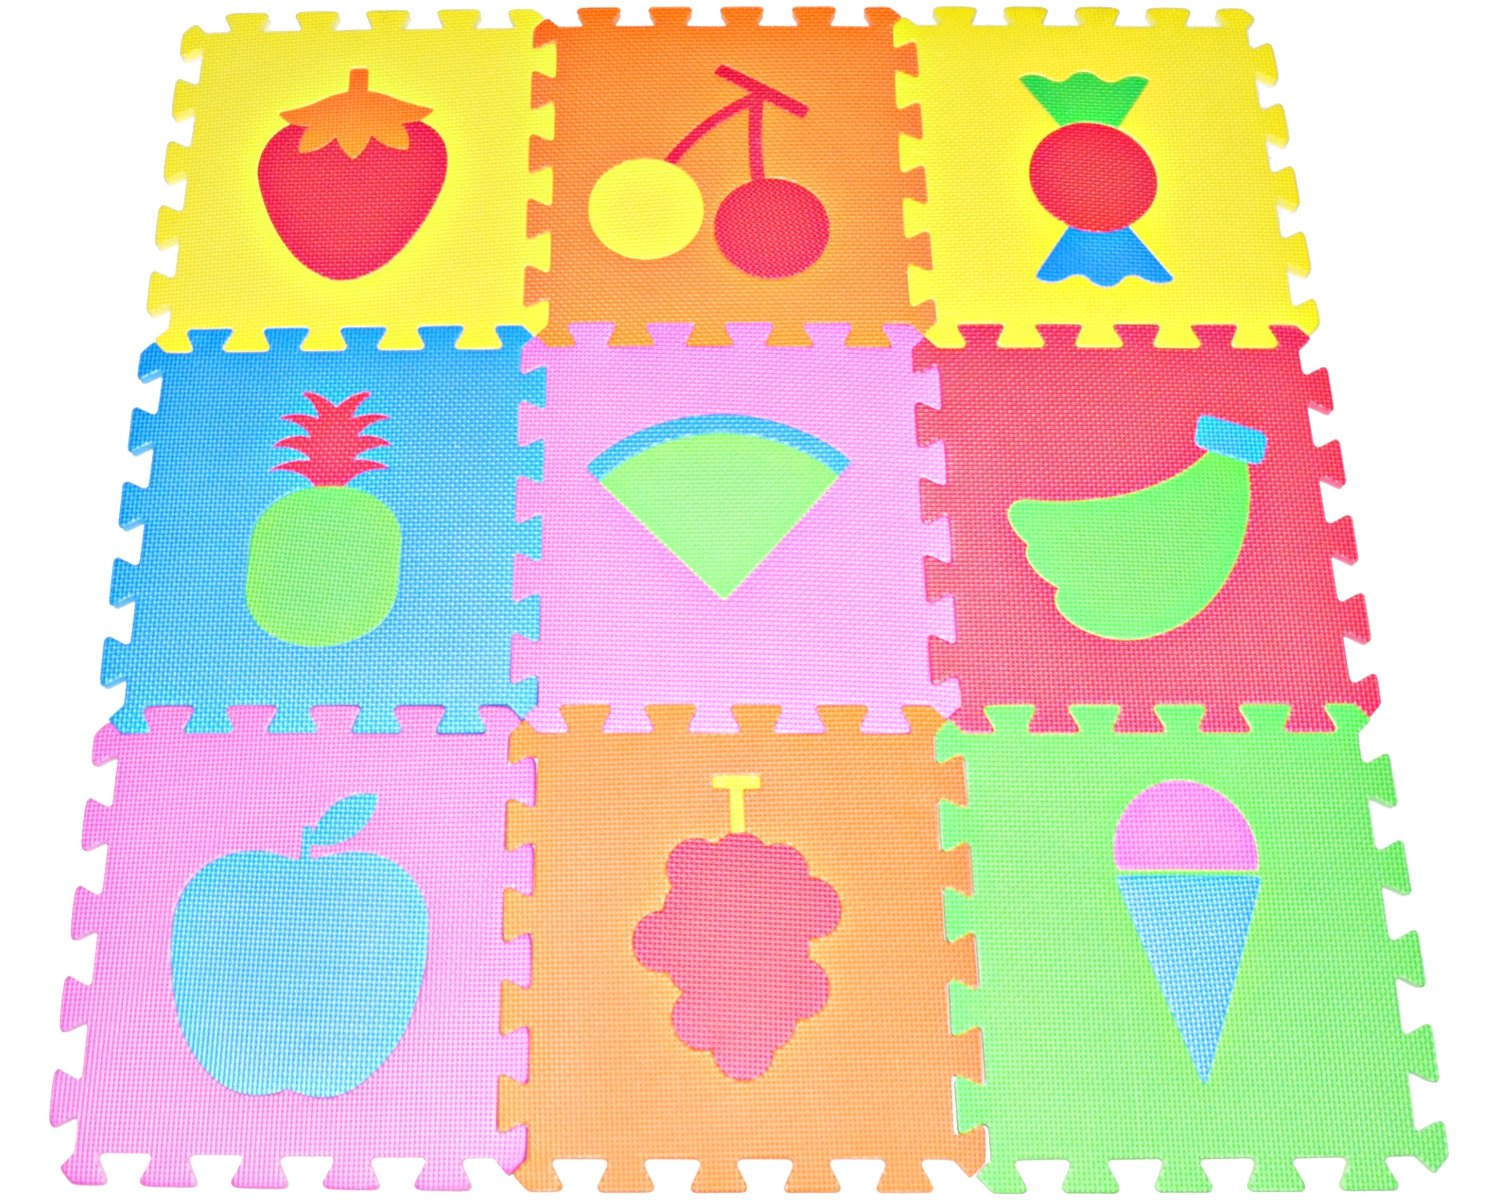 planet mat floor educational for mats alphabet puzzle toys kids